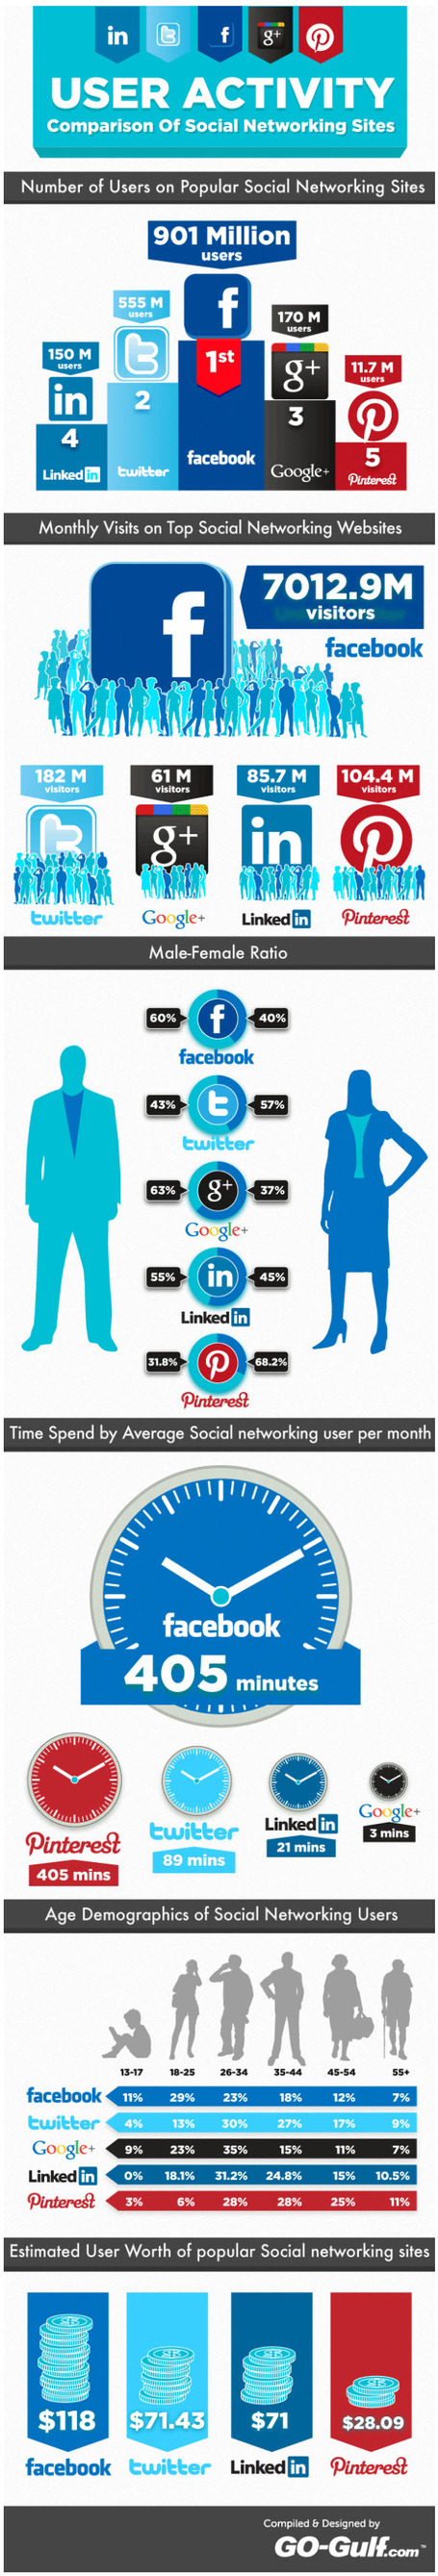 Social Network Tribes Gaining Momentum - The Latest Findings [Infographic] | digital marketing strategy | Scoop.it